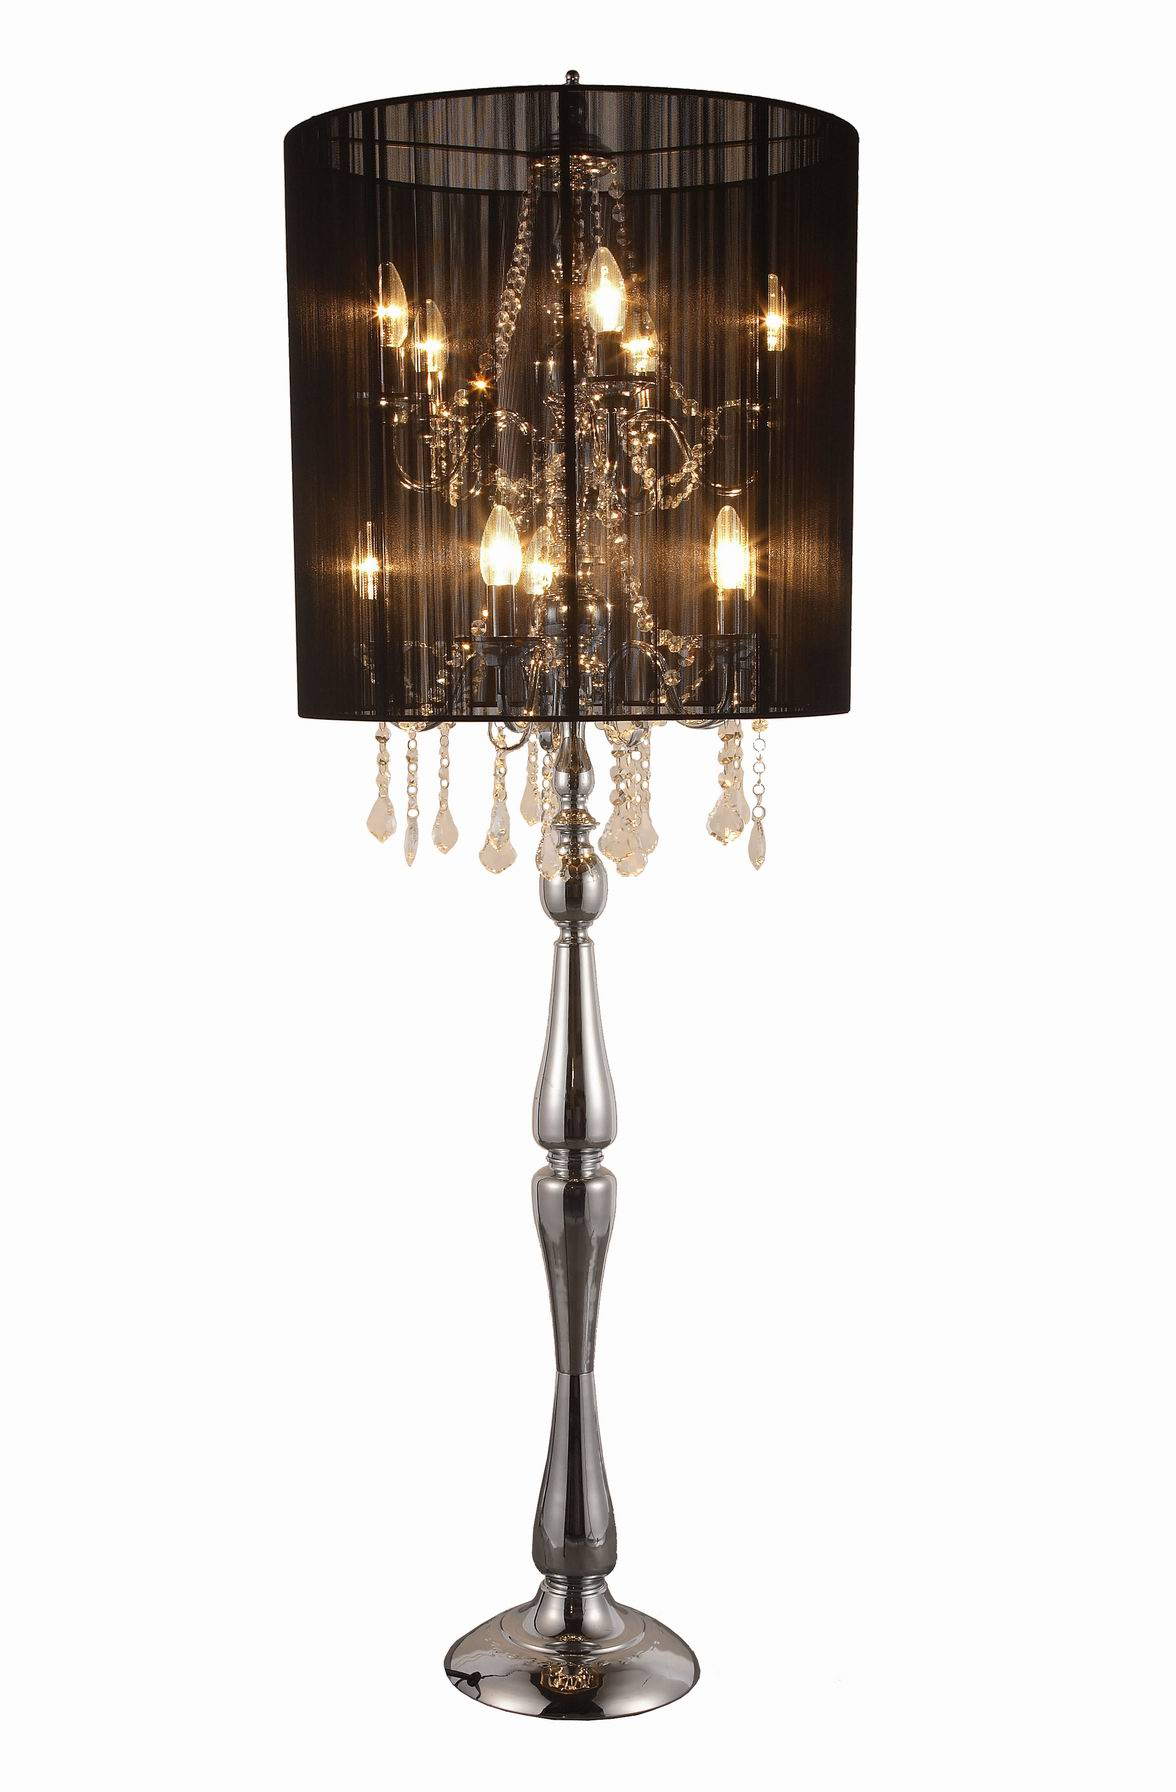 crystal-chandelier-table-lamps-photo-13